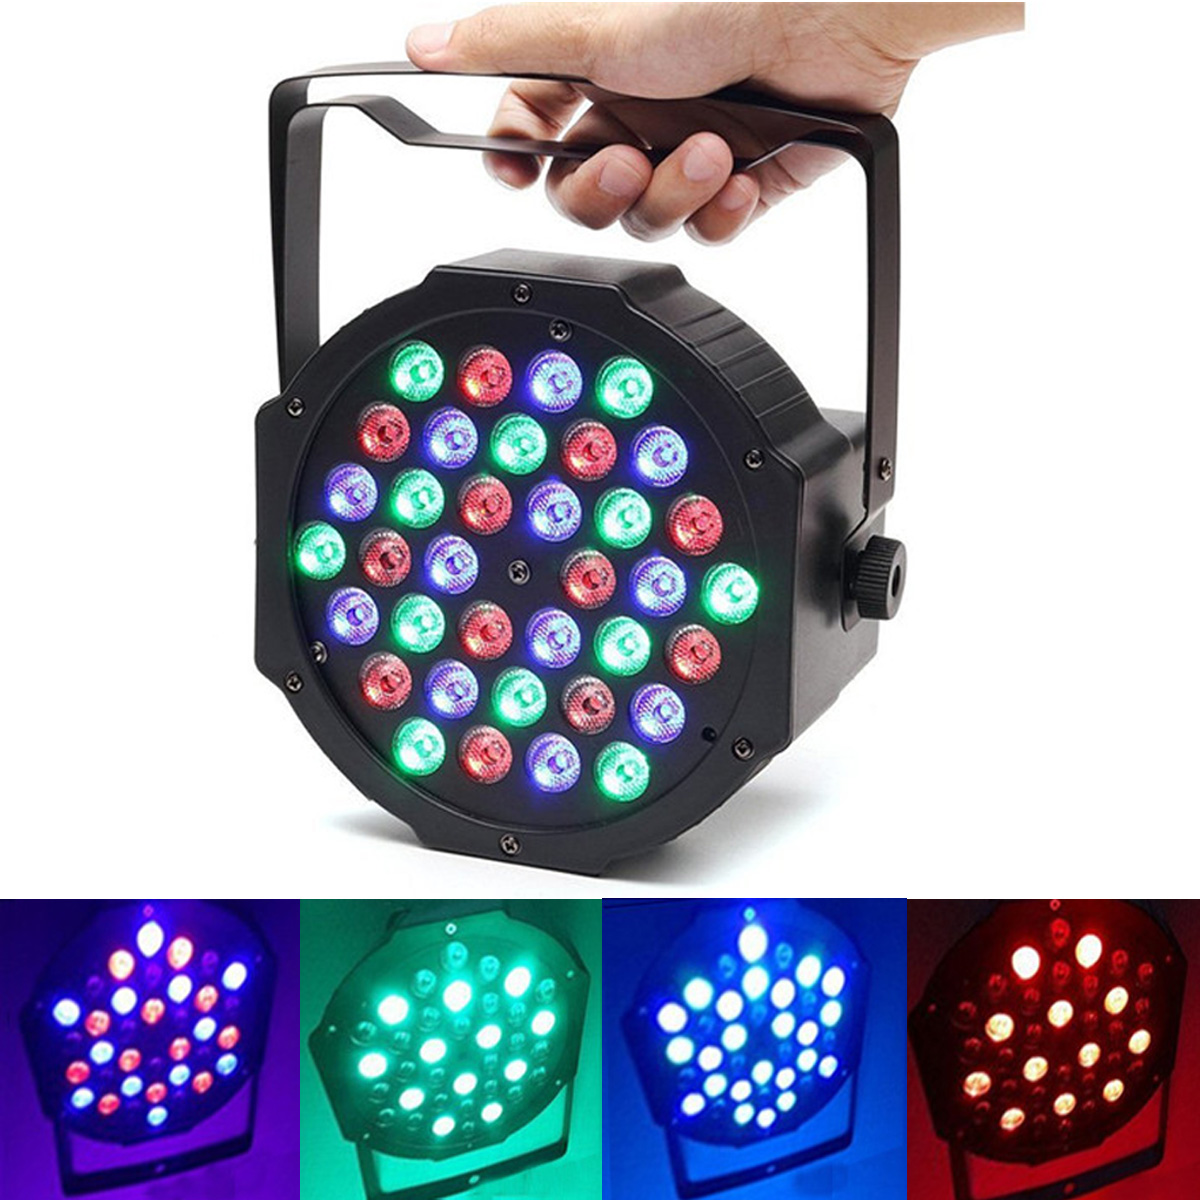 Stage Light 36W 36 LED RGB Par Light DMX512 Master Slave LED Flat DJ Equipment Controller Discos KTV Music Light djeco игра пары цифры